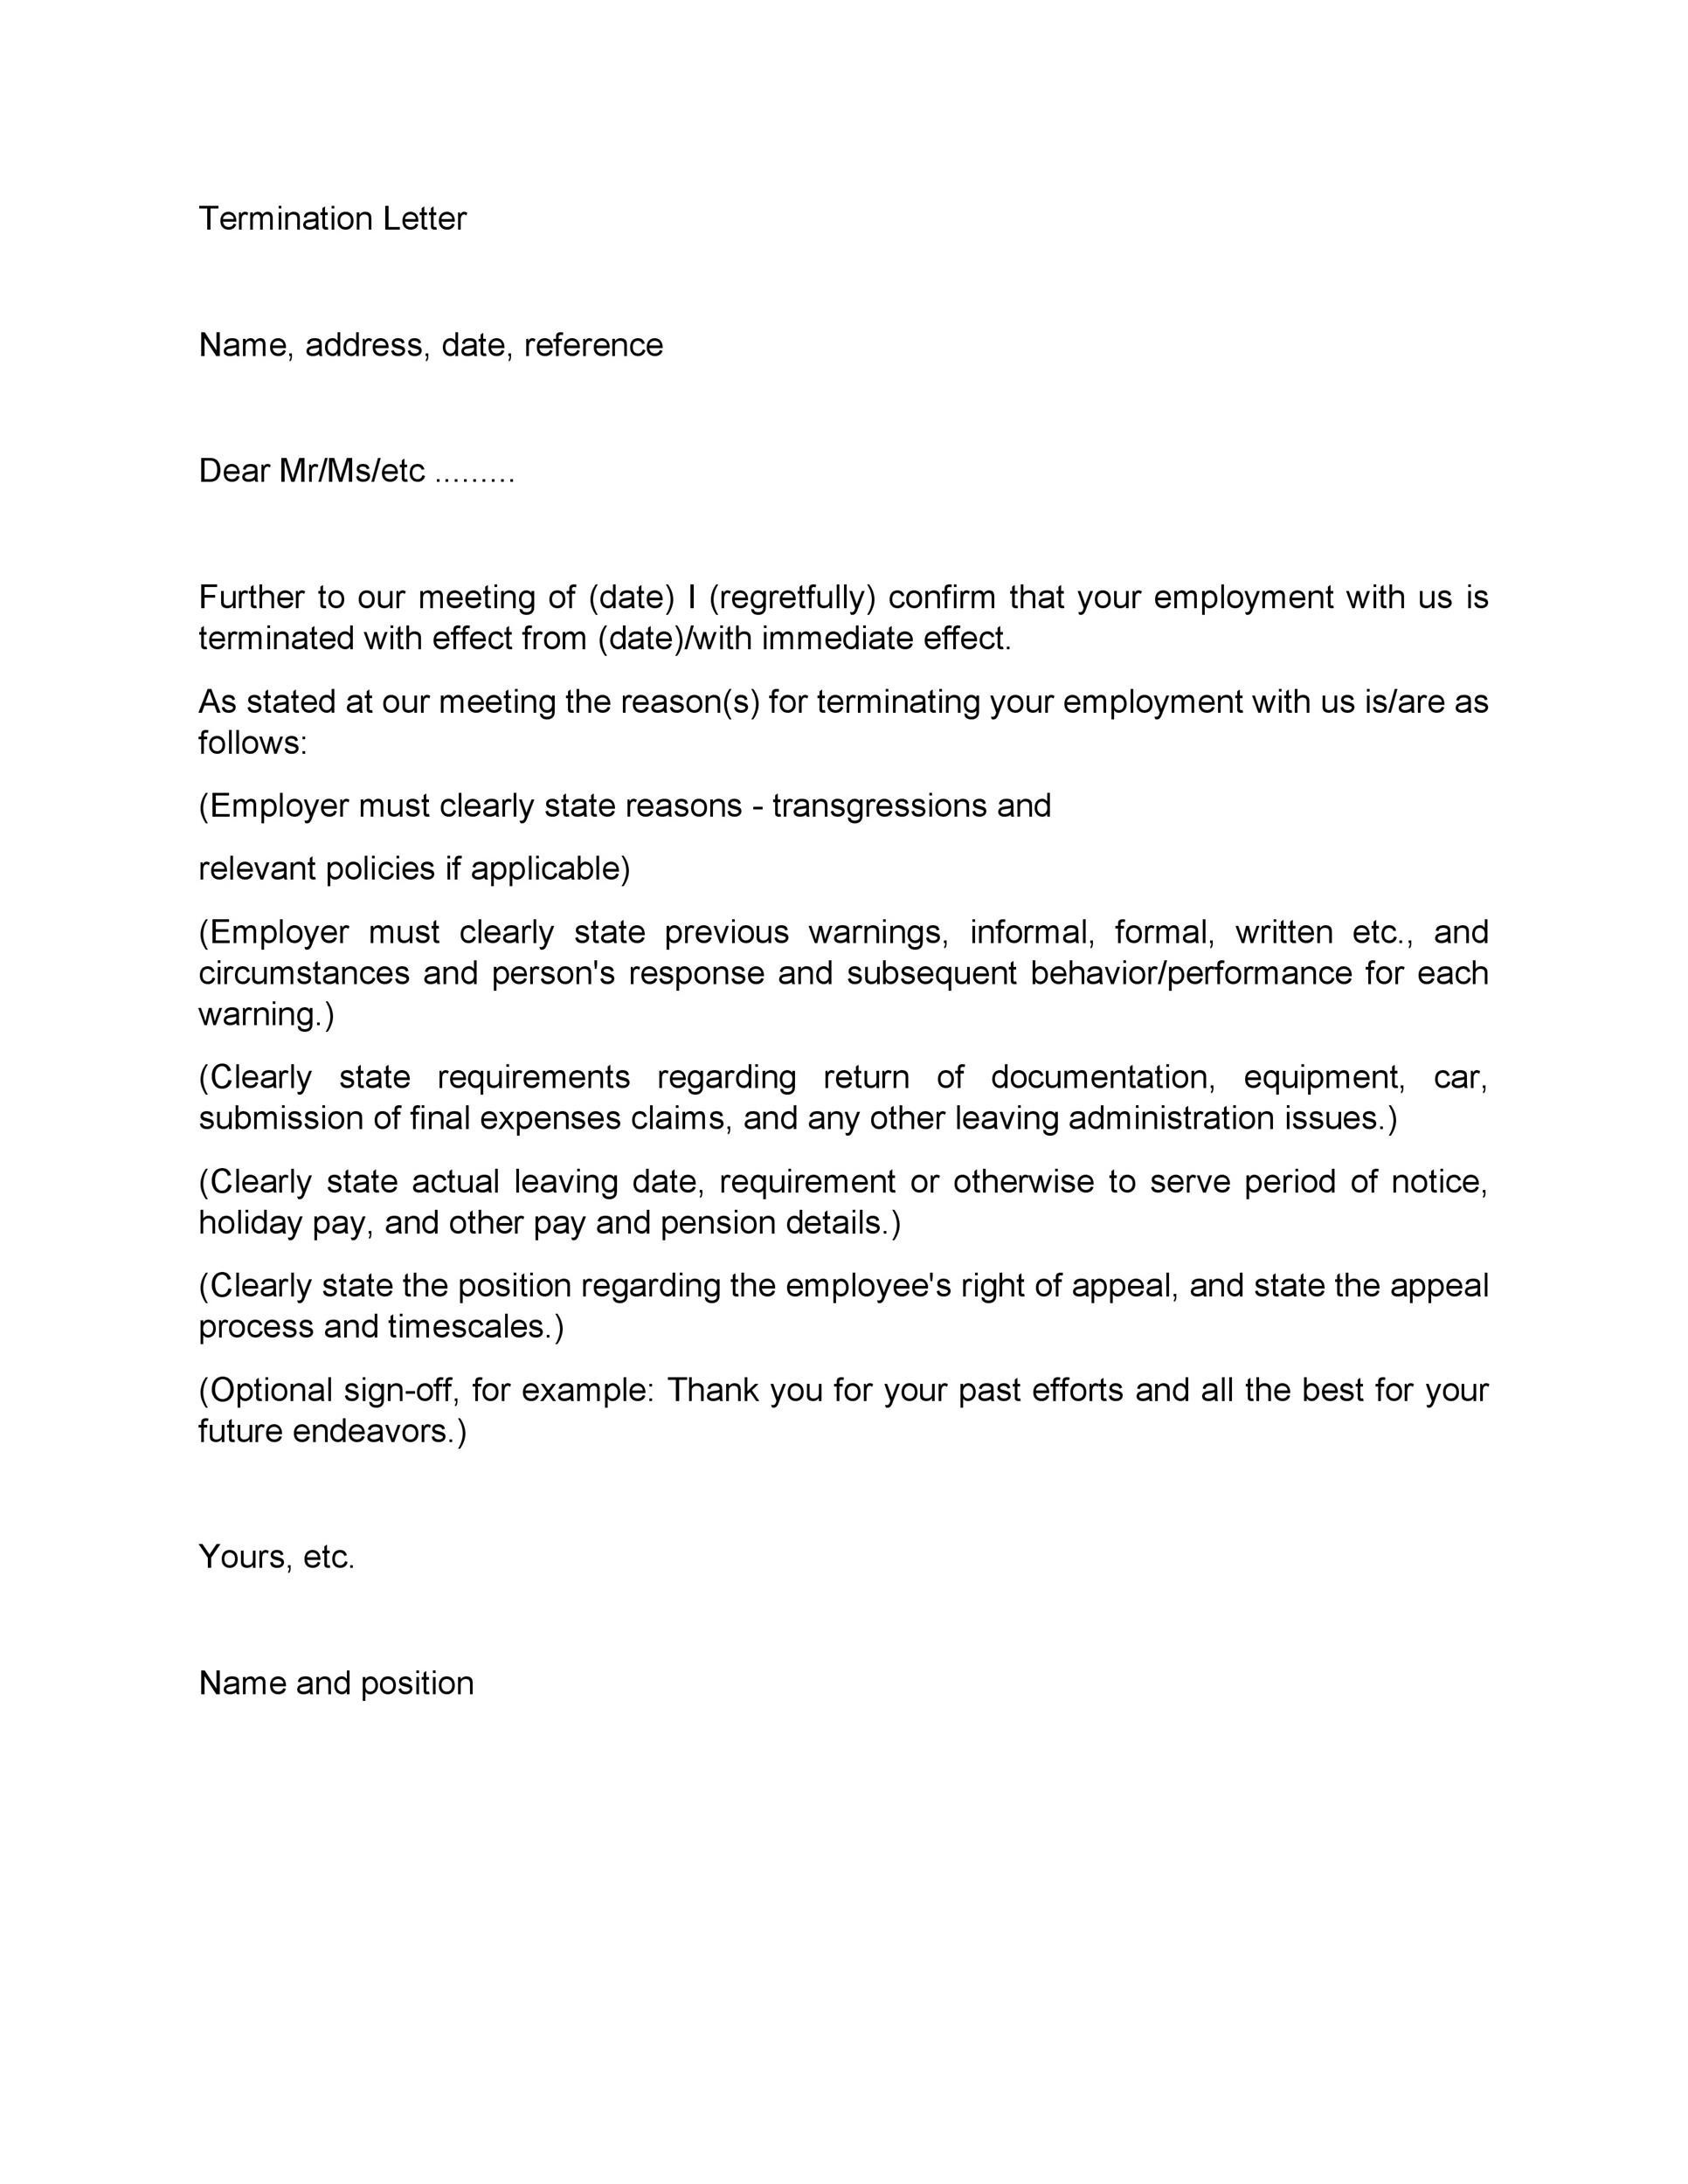 Printable Termination Letter Template 01  Sample Employee Termination Letter